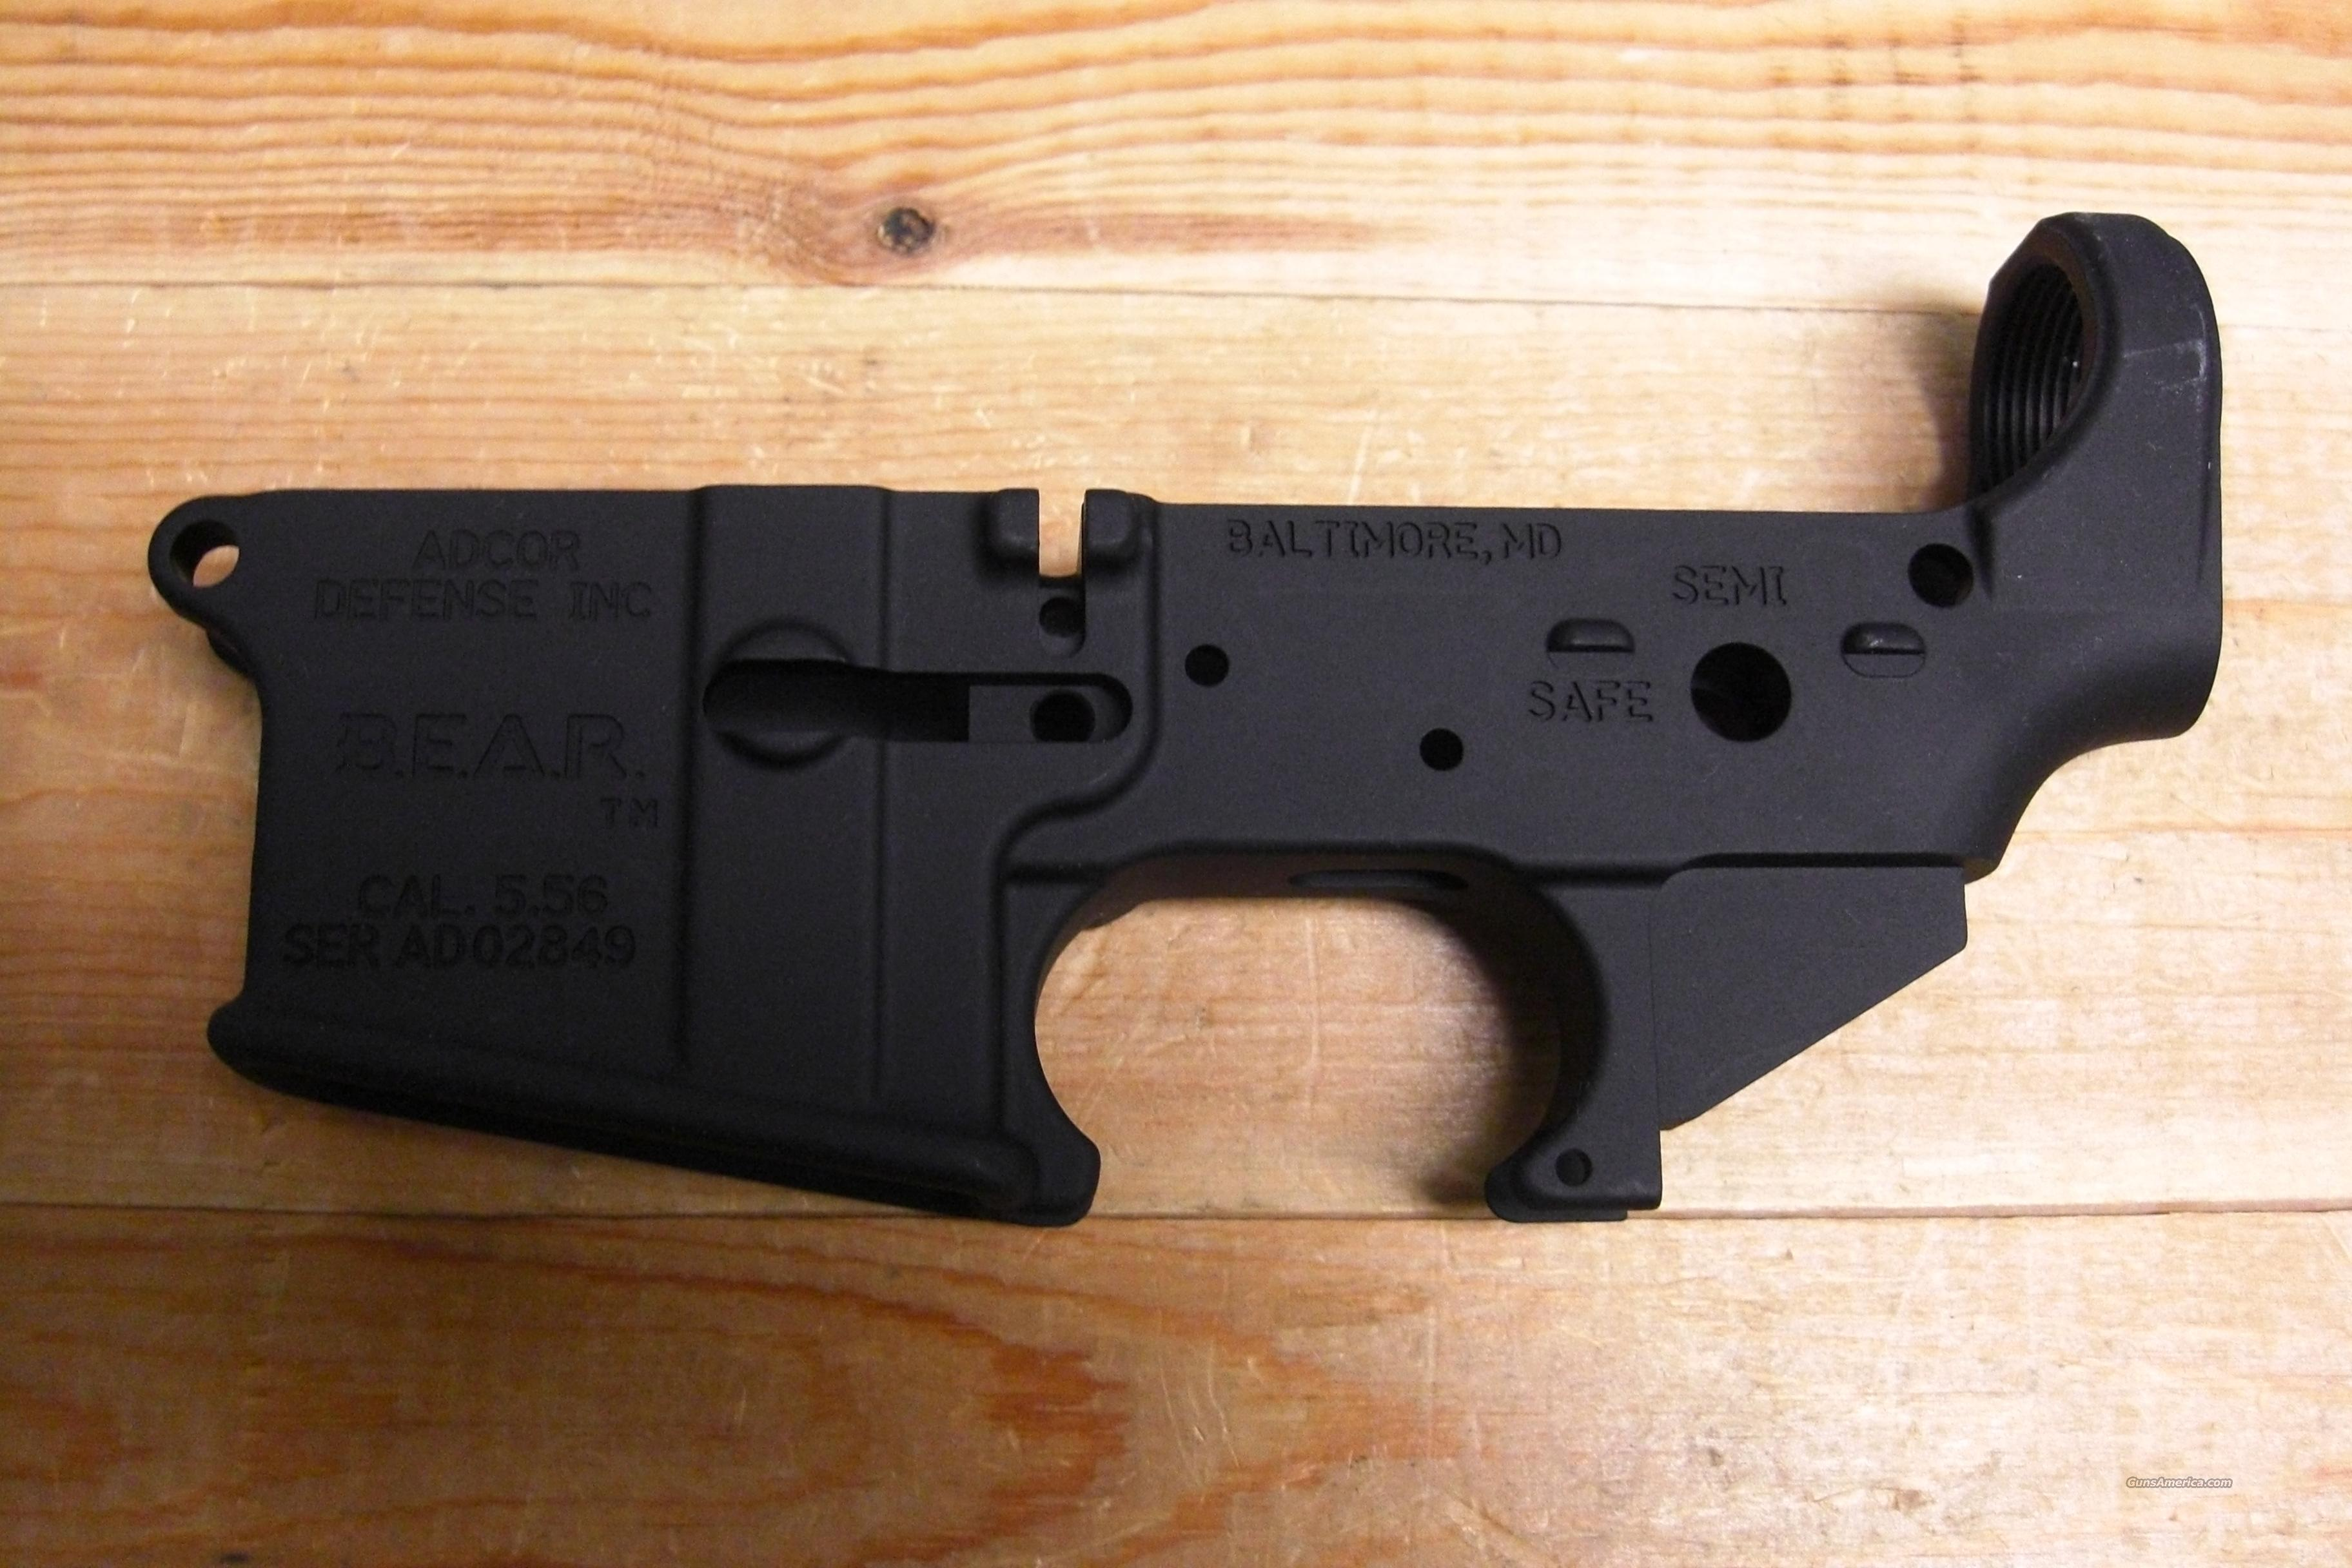 Adcor Defense  Bear  stripped receiver  Guns > Rifles > AR-15 Rifles - Small Manufacturers > Lower Only